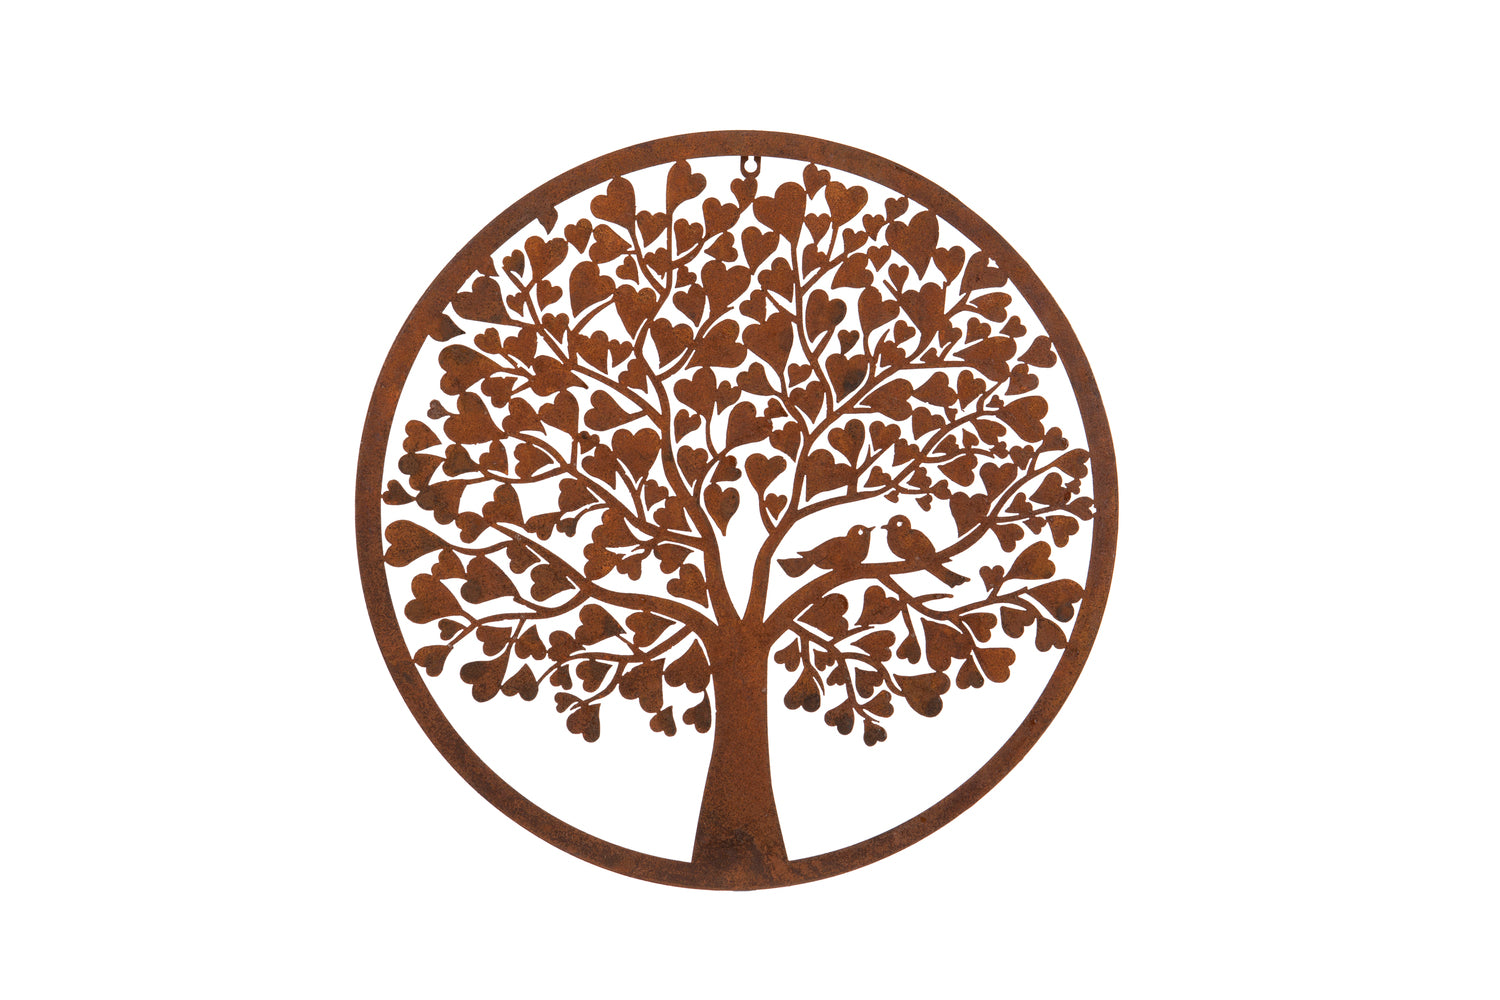 Heart tree wall plaque